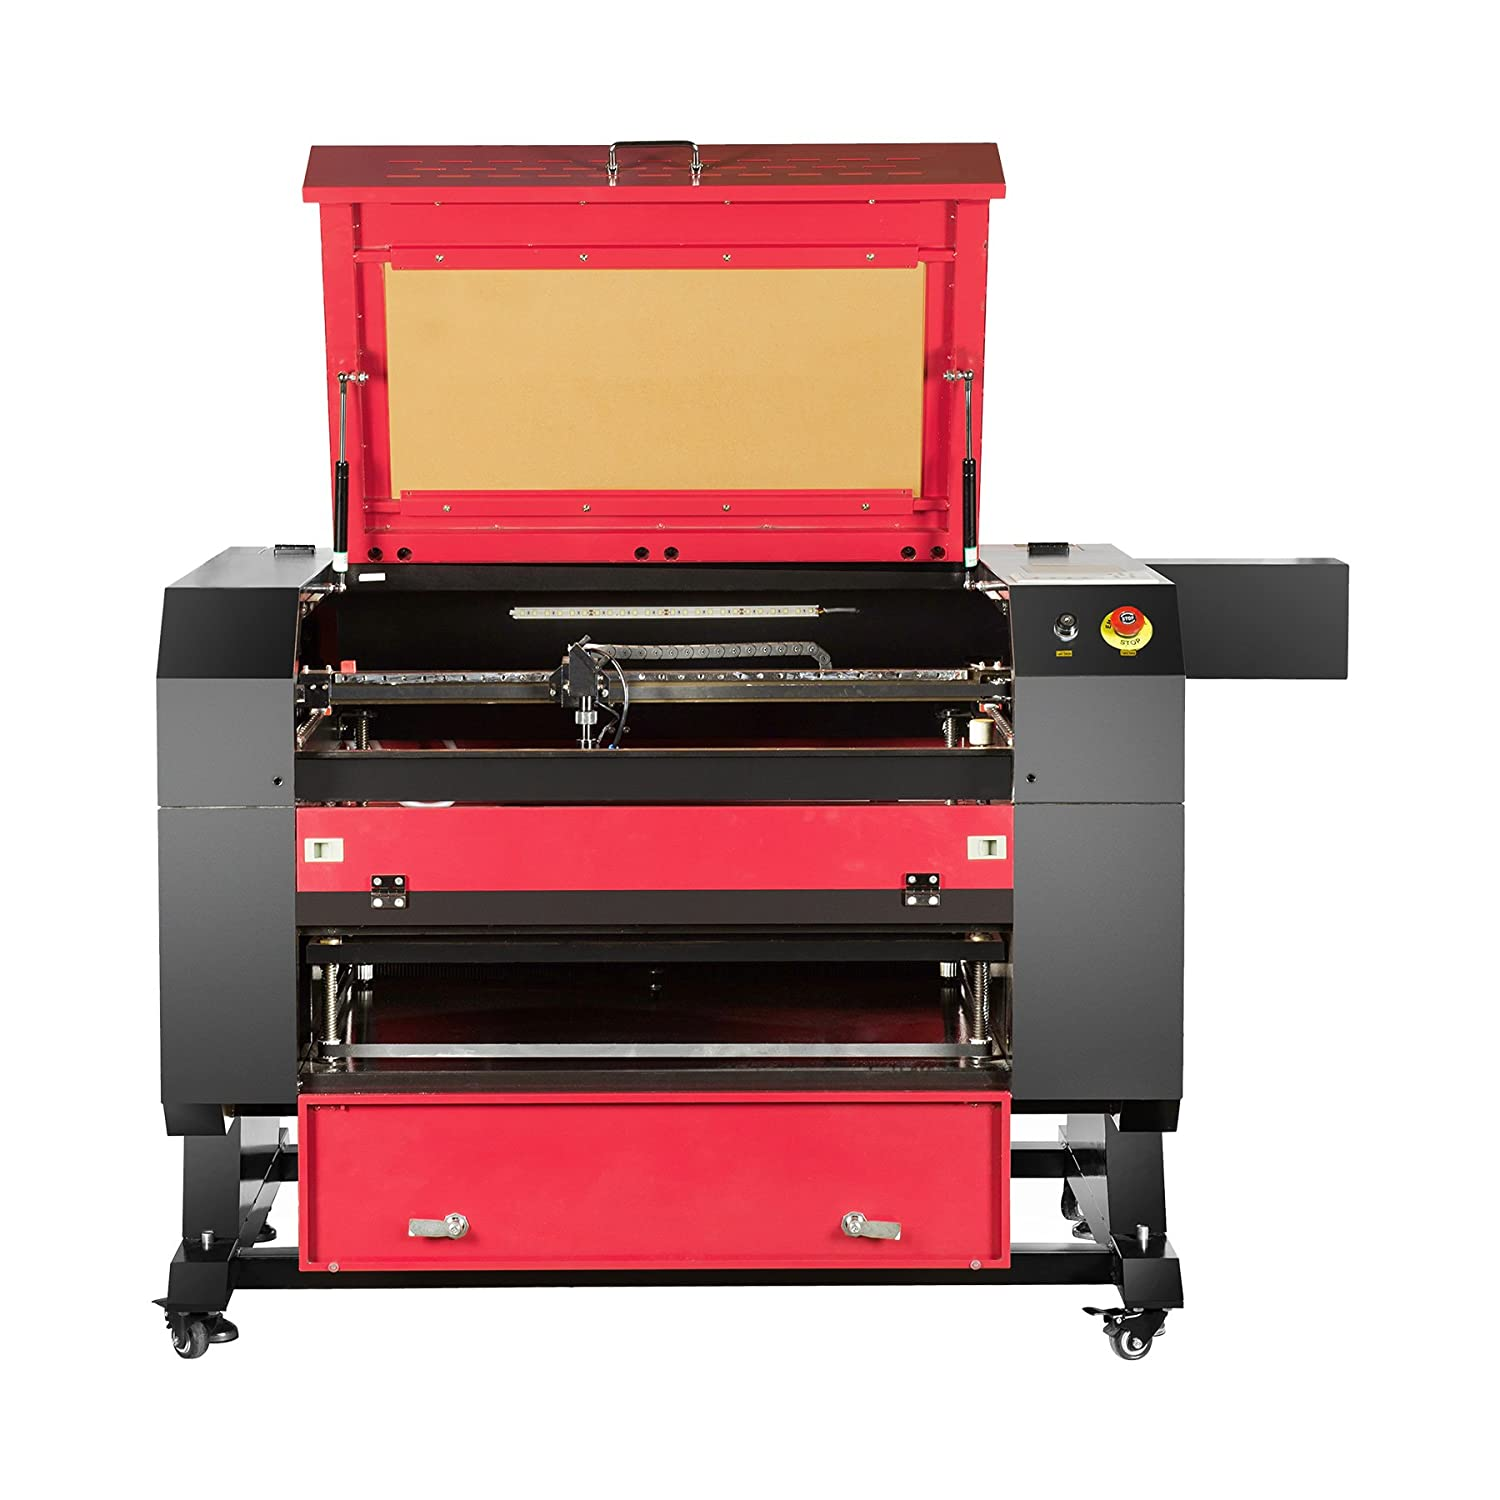 """Orion Motor Tech 80W CO2 Laser Engraving Cutting Machine, 110V Laser Cutter Engraver with DSP Control System and USB Interface (20"""" x 28"""" Working Area)"""